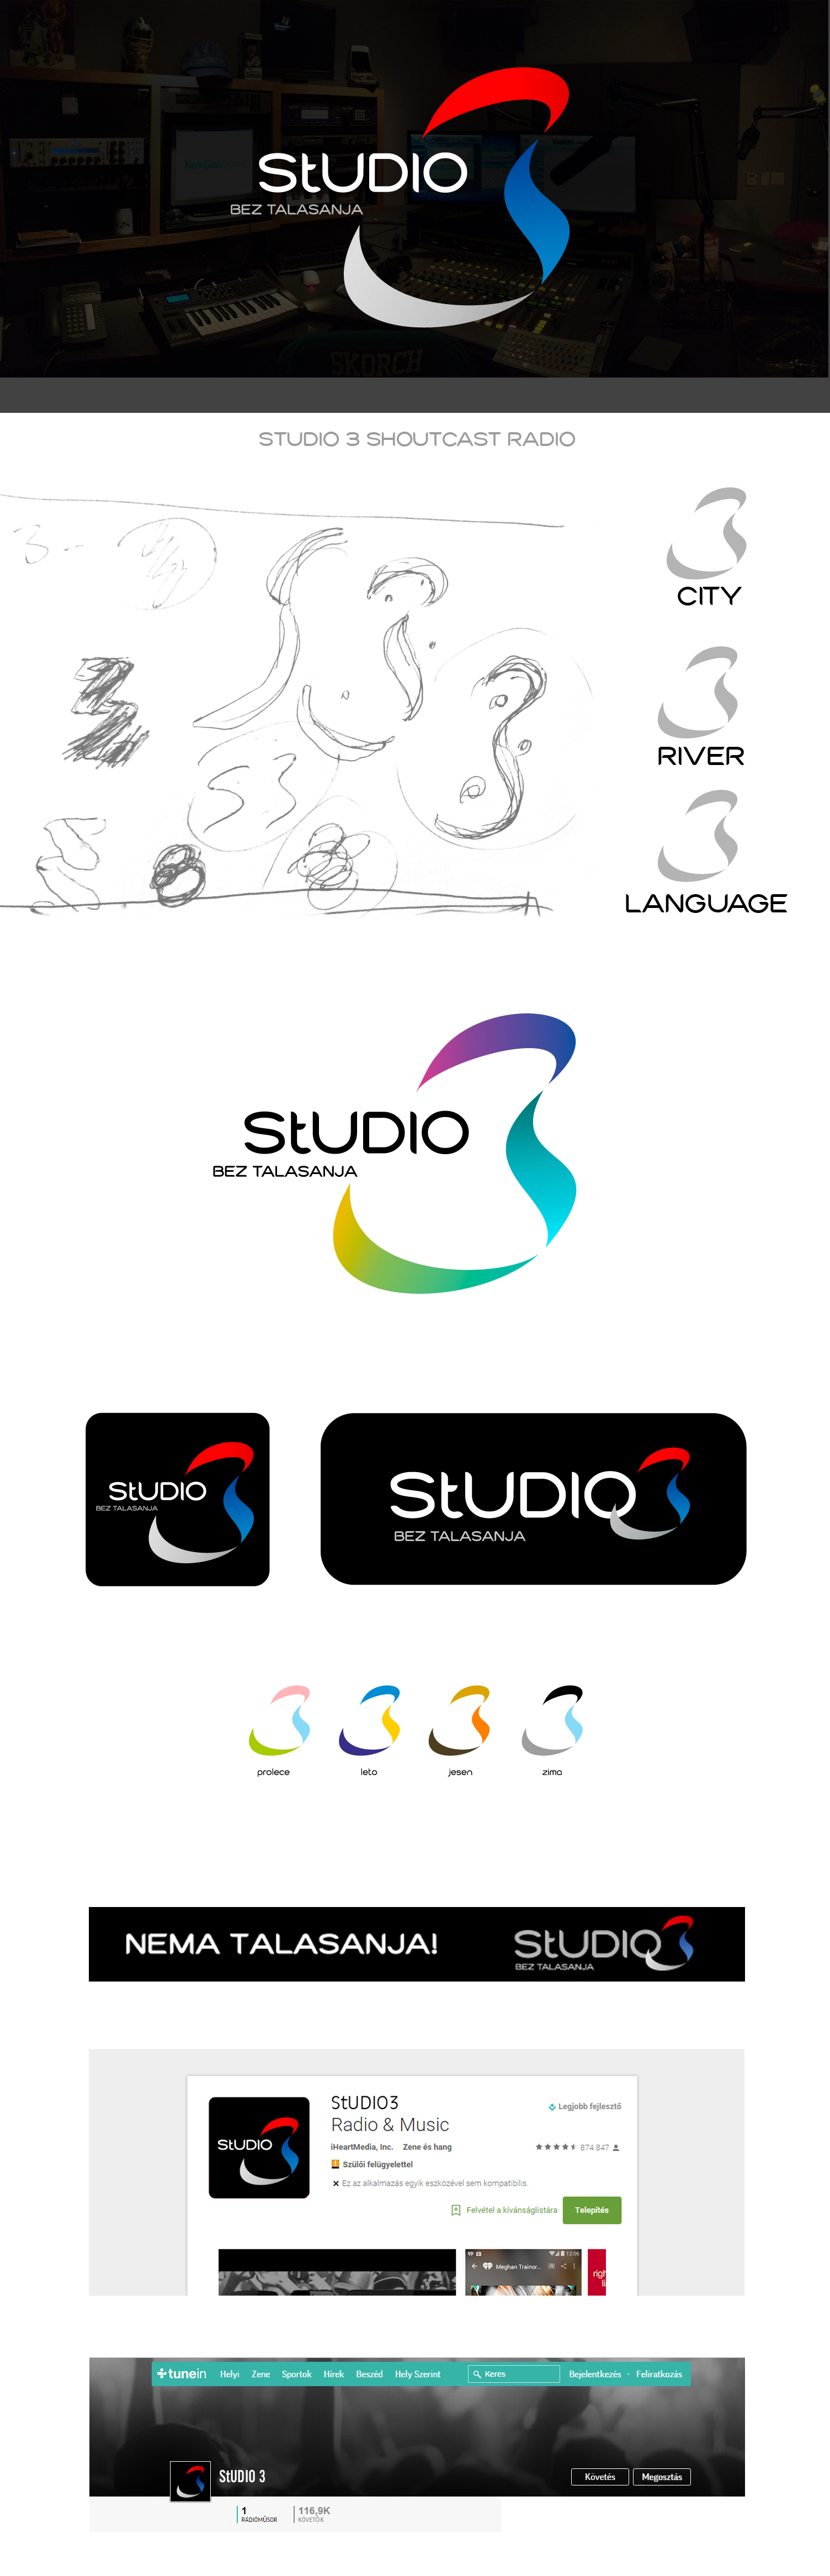 Studio 3 logo design branding showcase